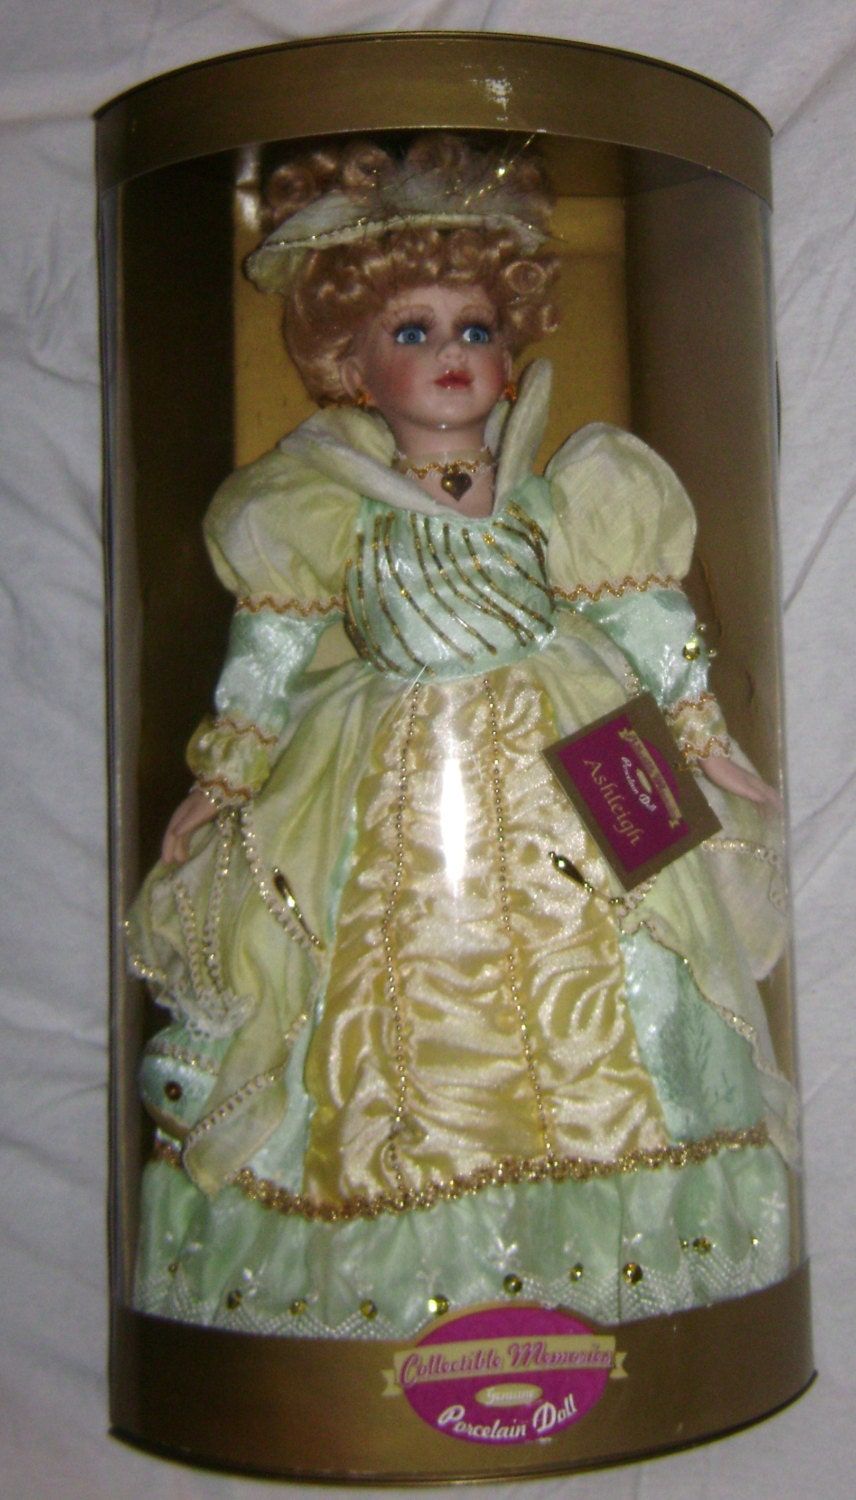 Vintage Collectible Memories Porcelain Doll Ashleigh in the